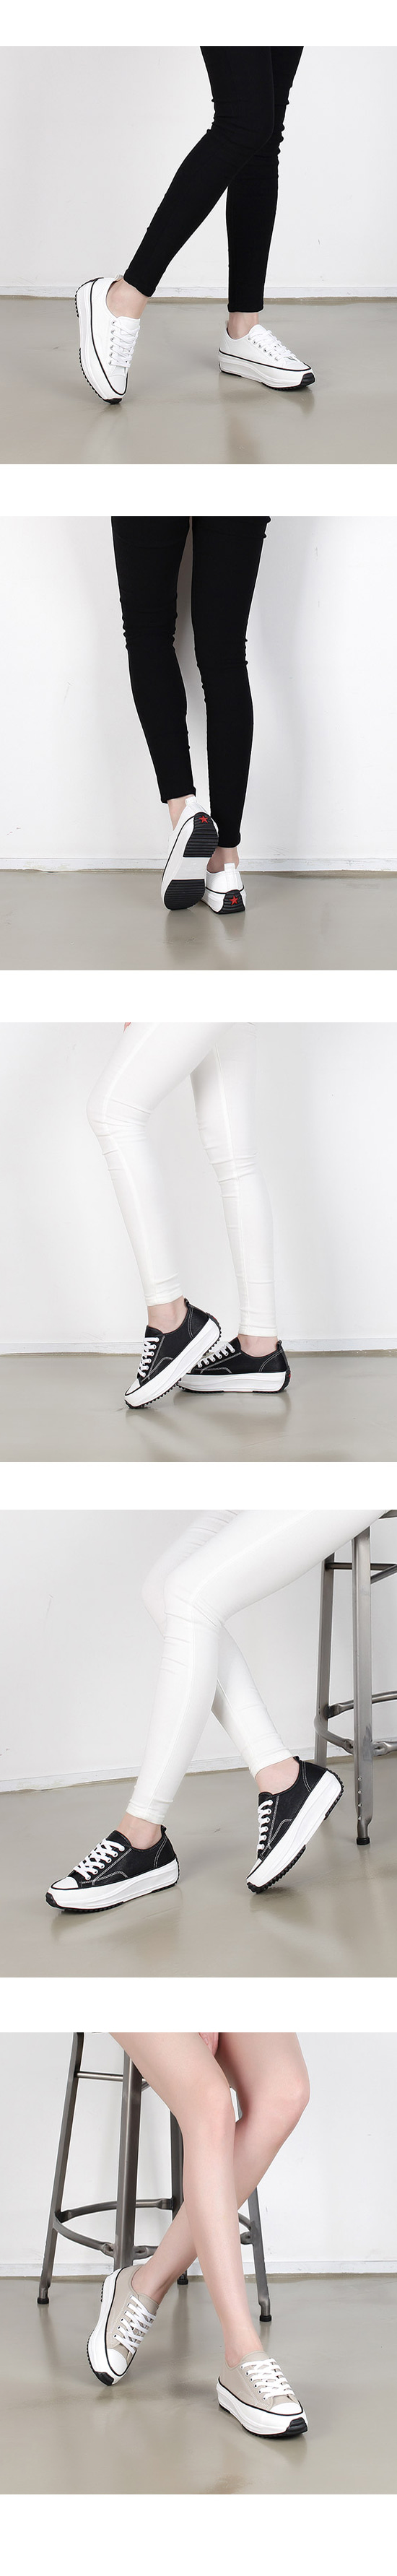 Star Lace-up Cushion Sneakers White